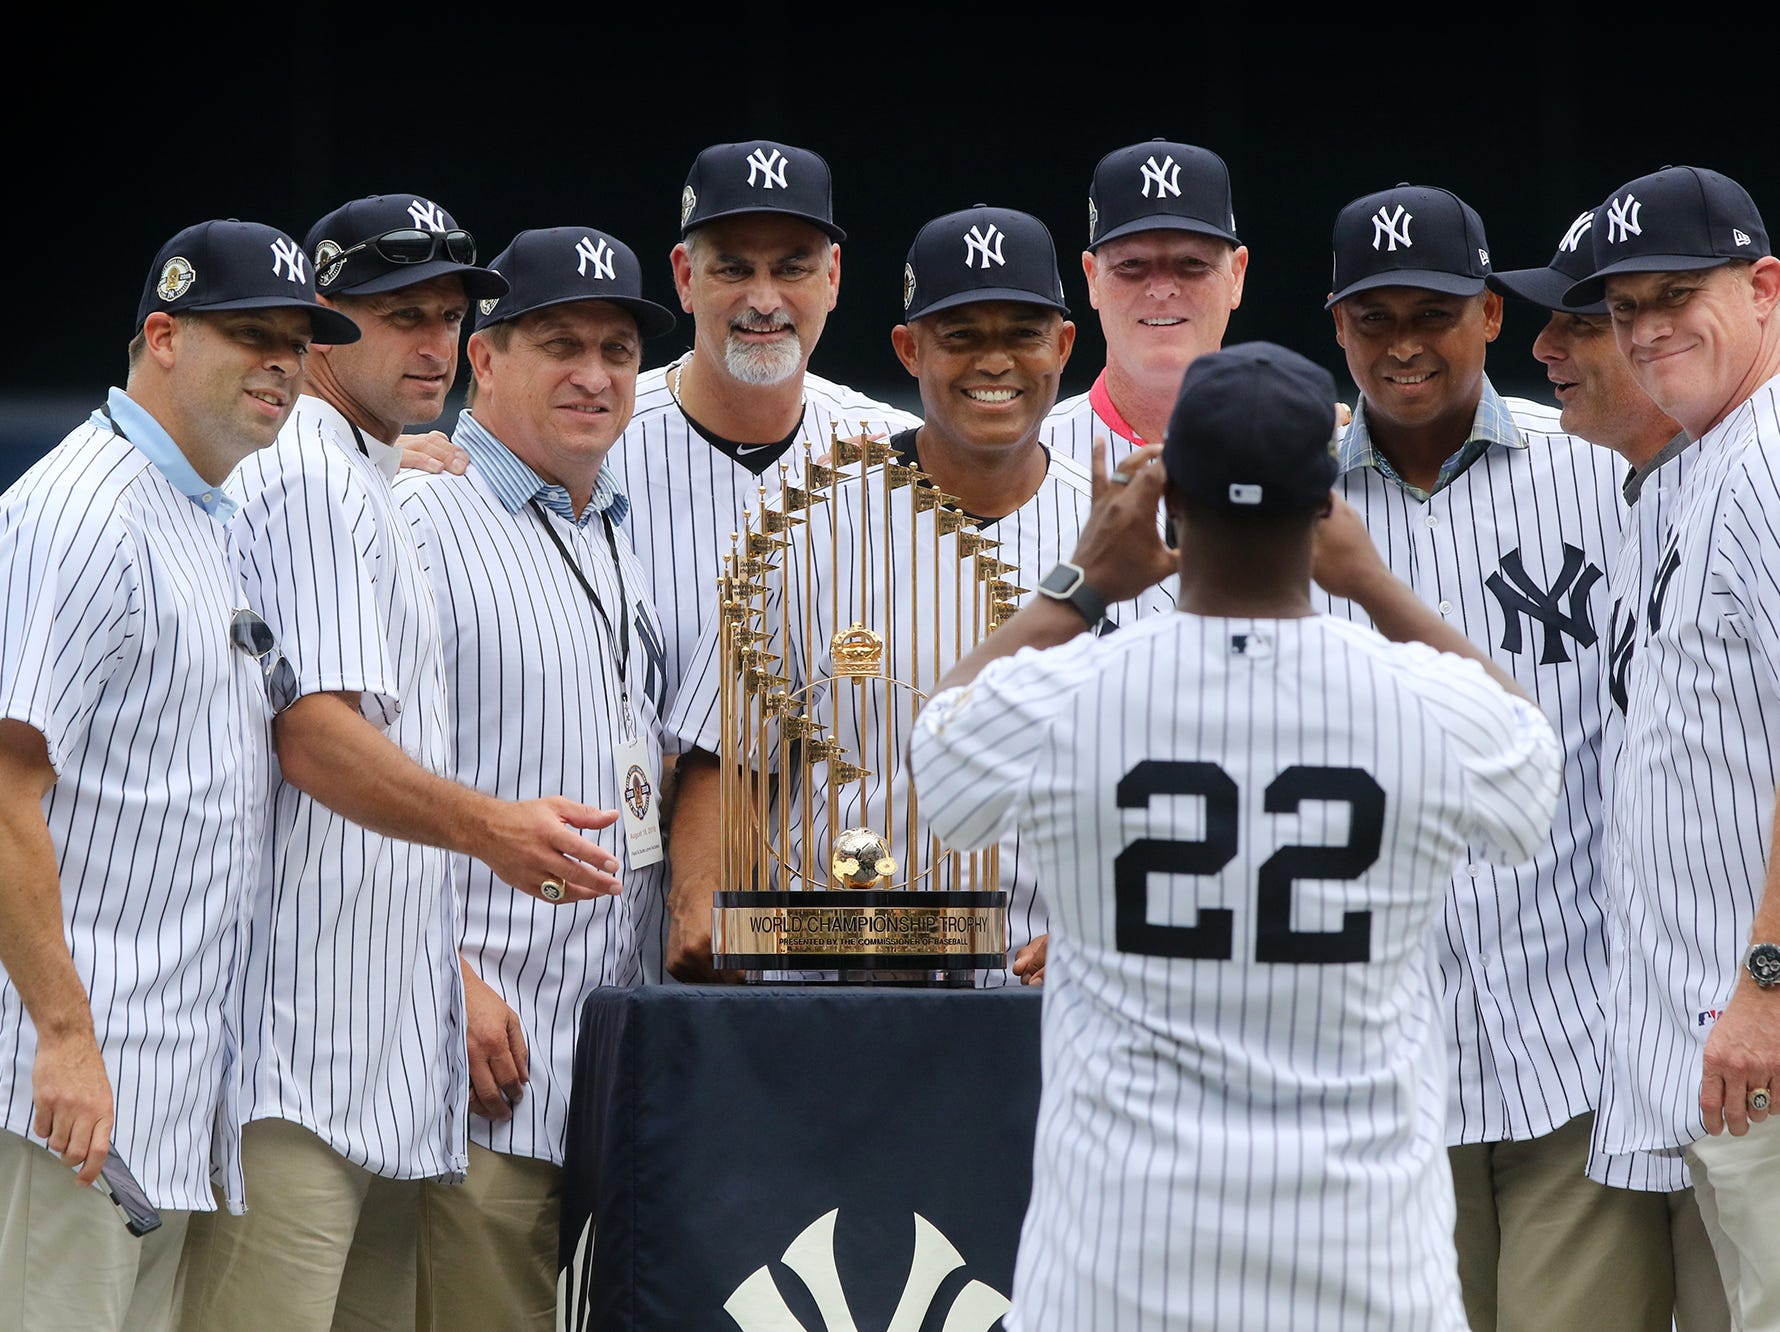 Members of the 1998 Yankee bullpen pose for a photo taken by Homer Bush with the MLB championship trophy.Pedota POY 2018